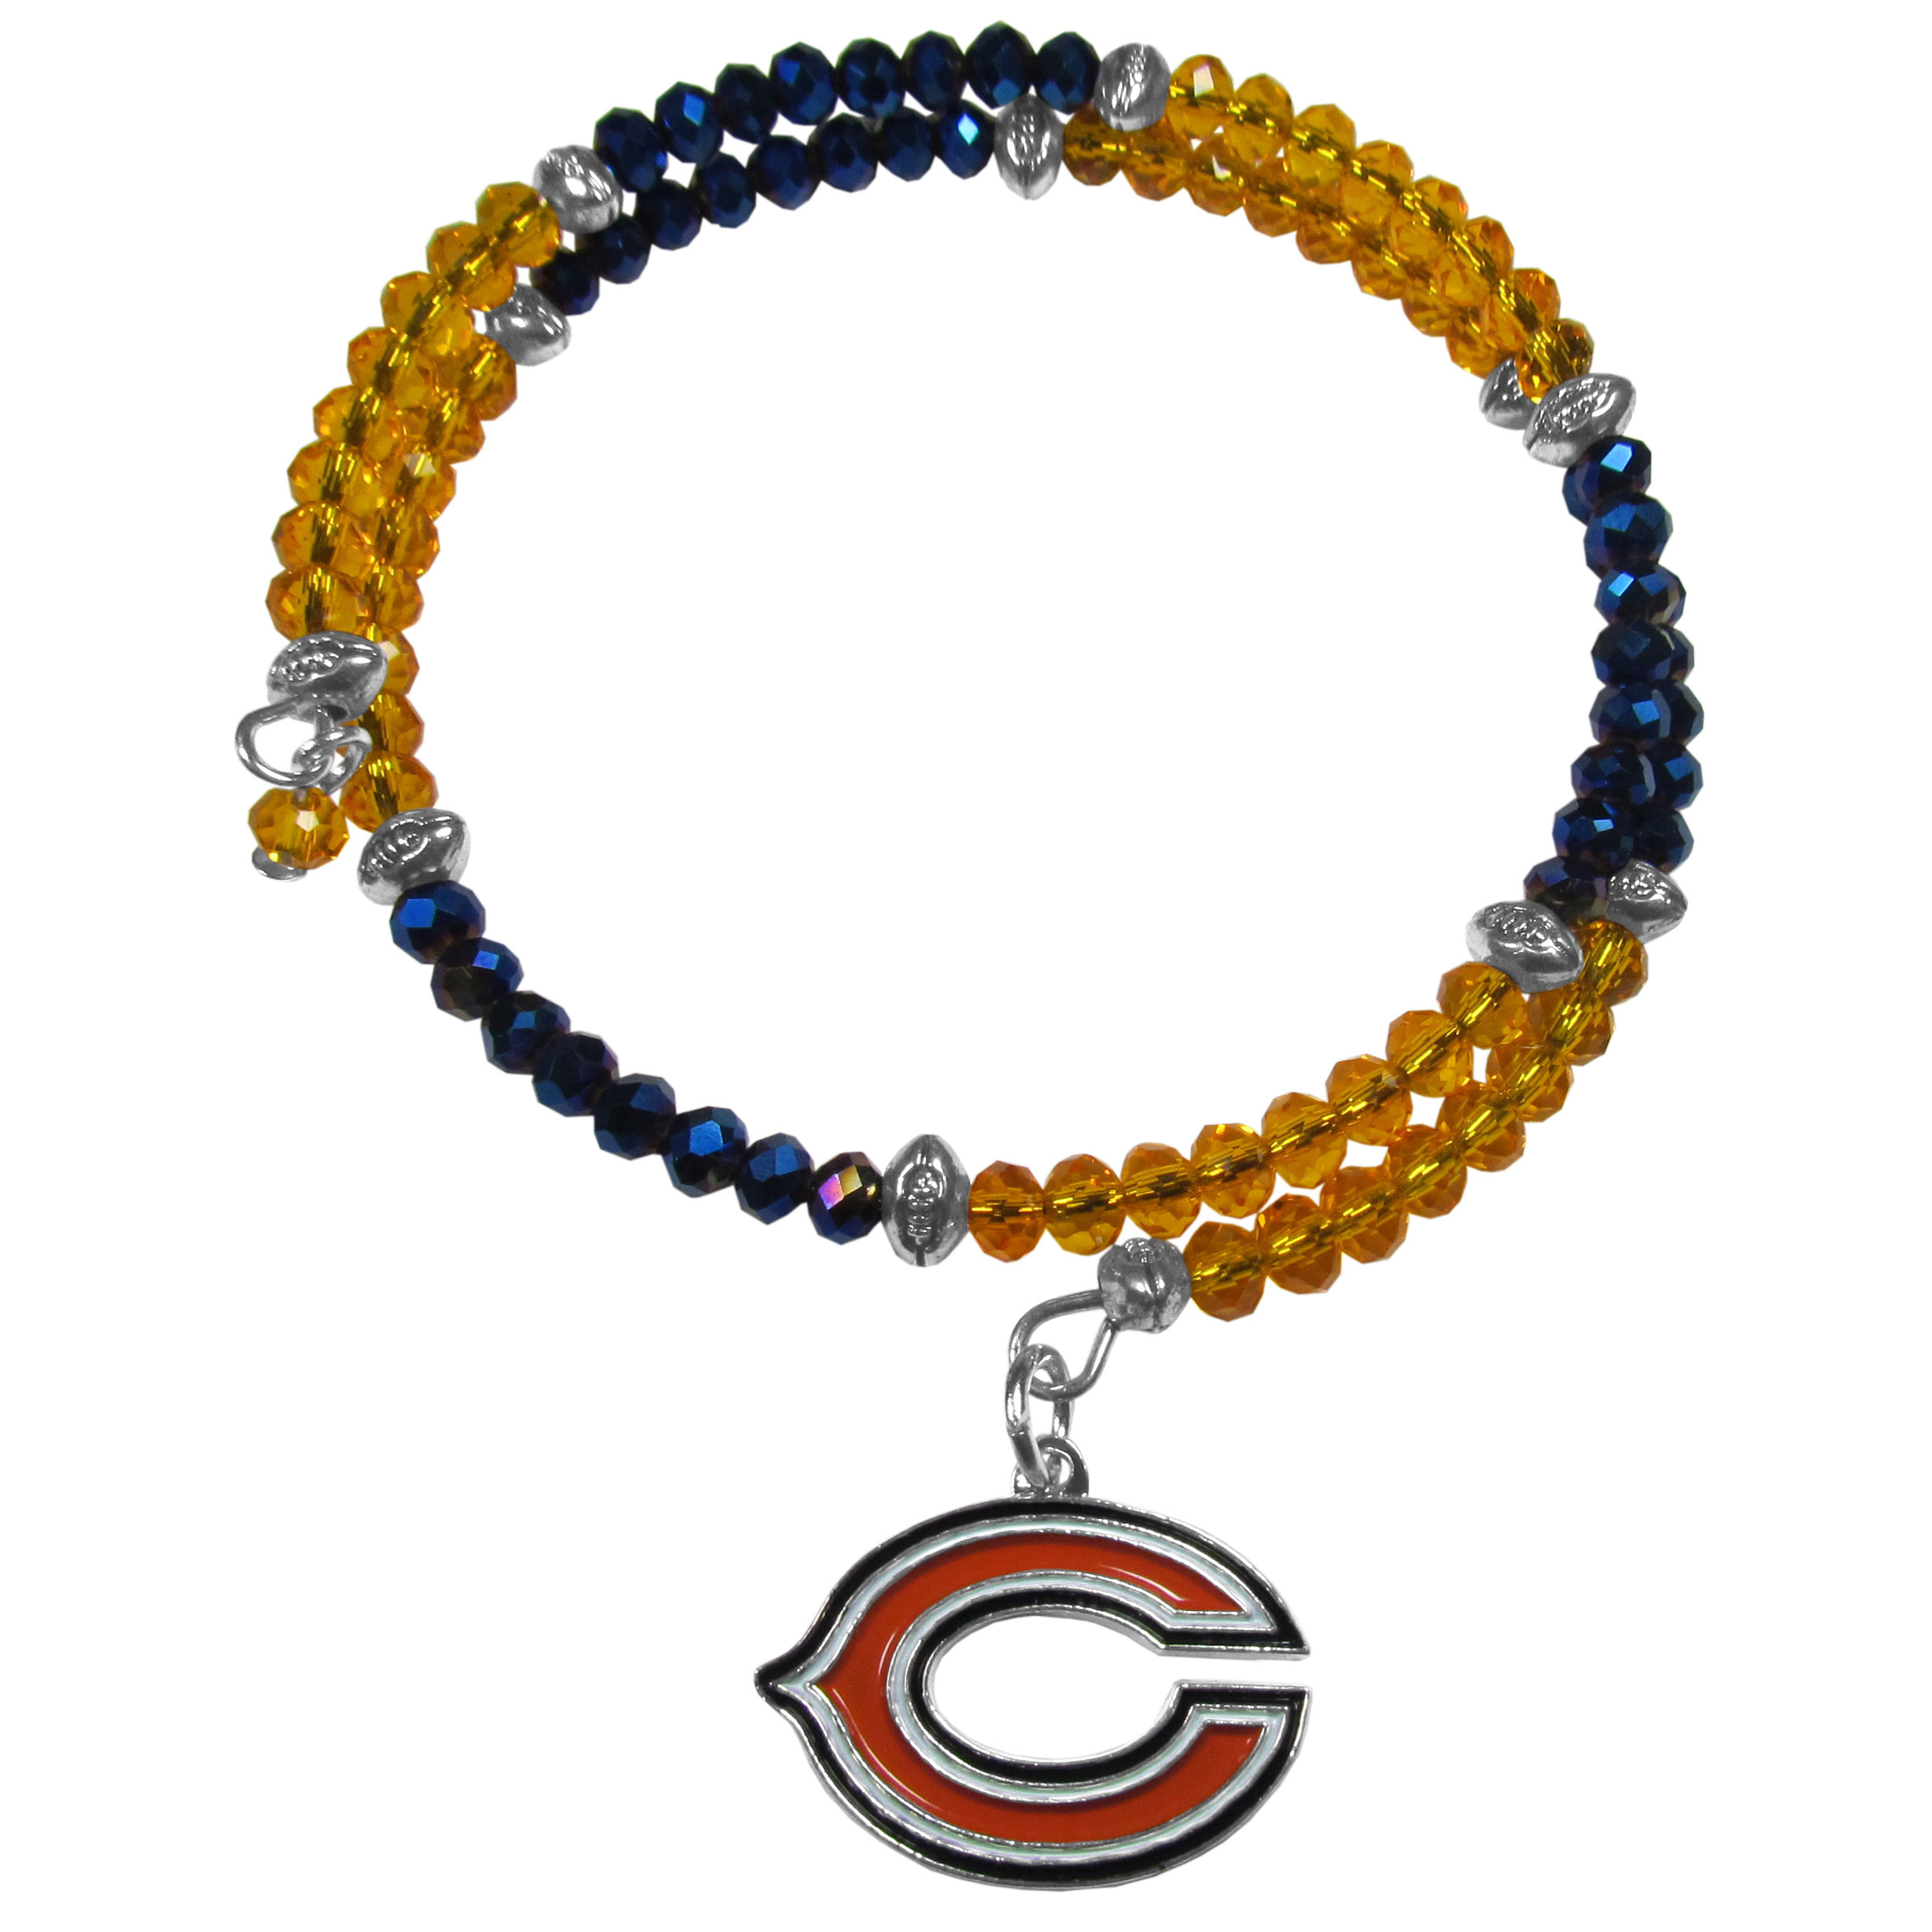 Chicago Bears Crystal Memory Wire Bracelet - Our Chicago Bears memory wire crystal bracelet is trendy way to show off your love of the game. The double wrap bracelet is completely covered in 4 mm crystals that are broken up with adorable football beads creating a designer look with a sporty twist. The bracelet features a fully cast, metal team charm that has expertly enameled team colors. This fashion jewelry piece is a must-have for the die-hard fan that chic look that can dress up any outfit.